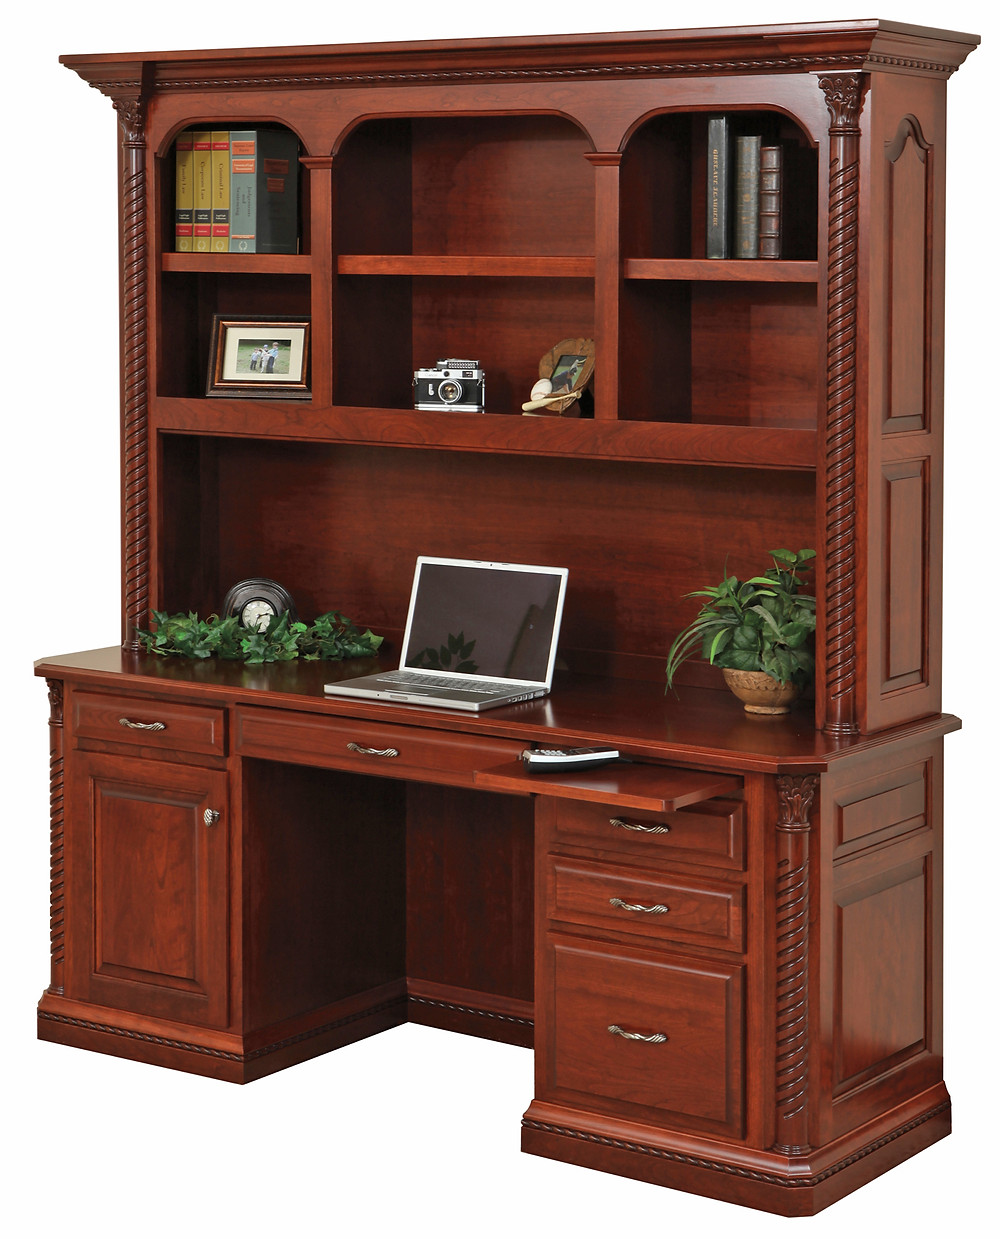 Concord Desk with Hutch in Cherry - Home Office Furniture